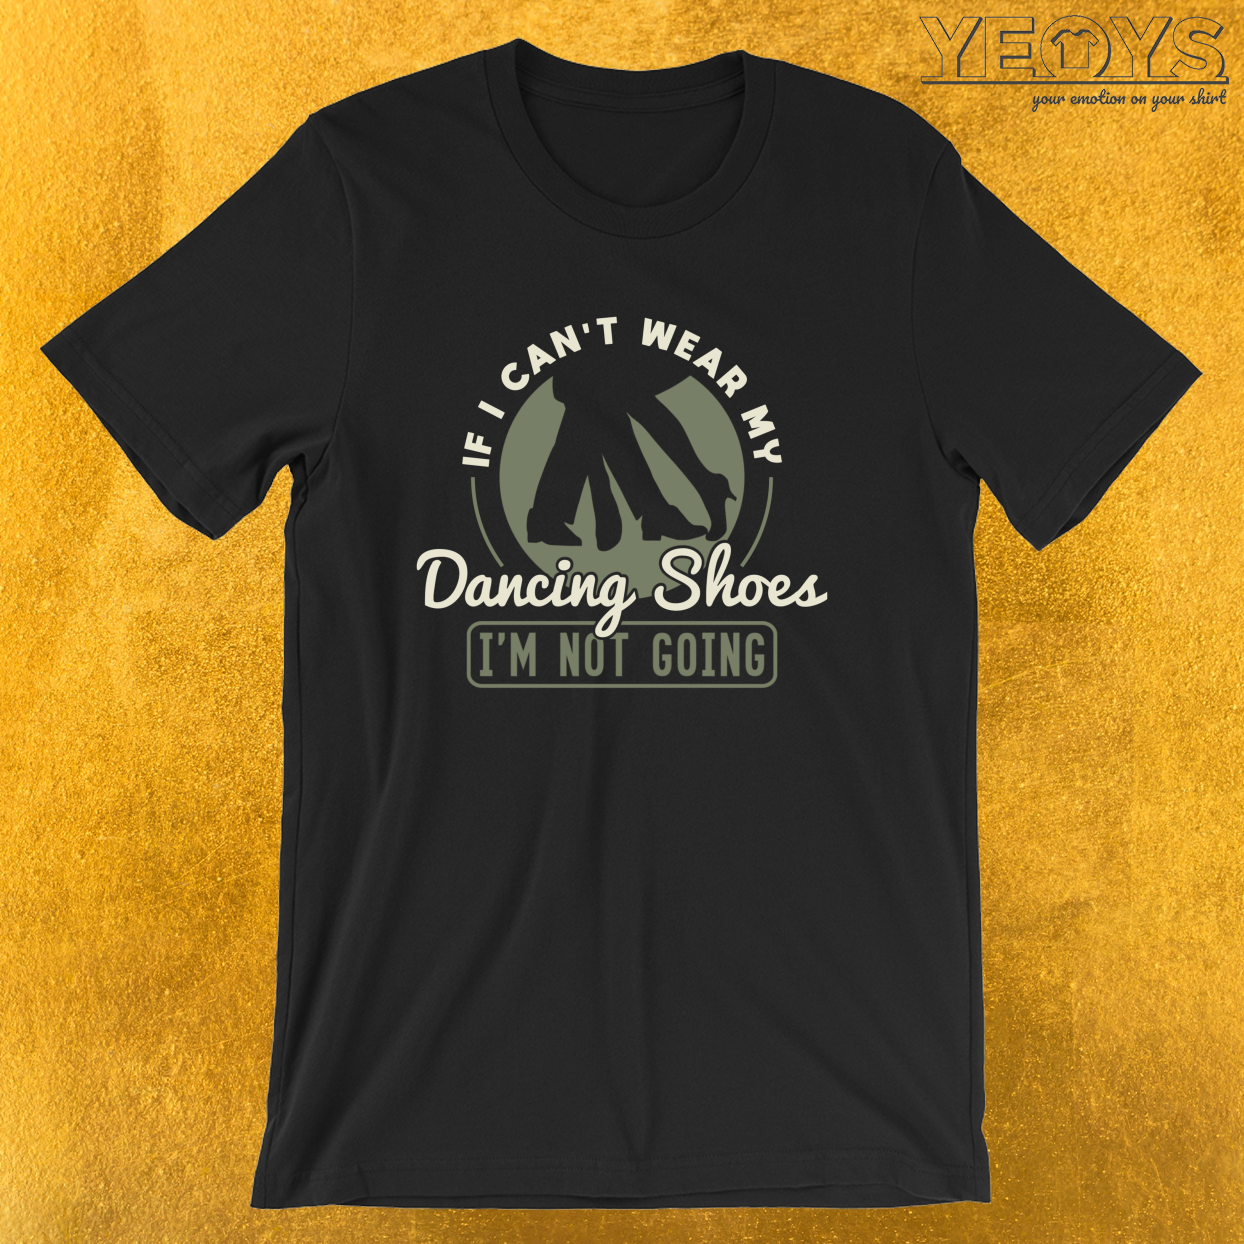 If I Can't Wear My Dancing Shoes – Ballroom Dance Tee